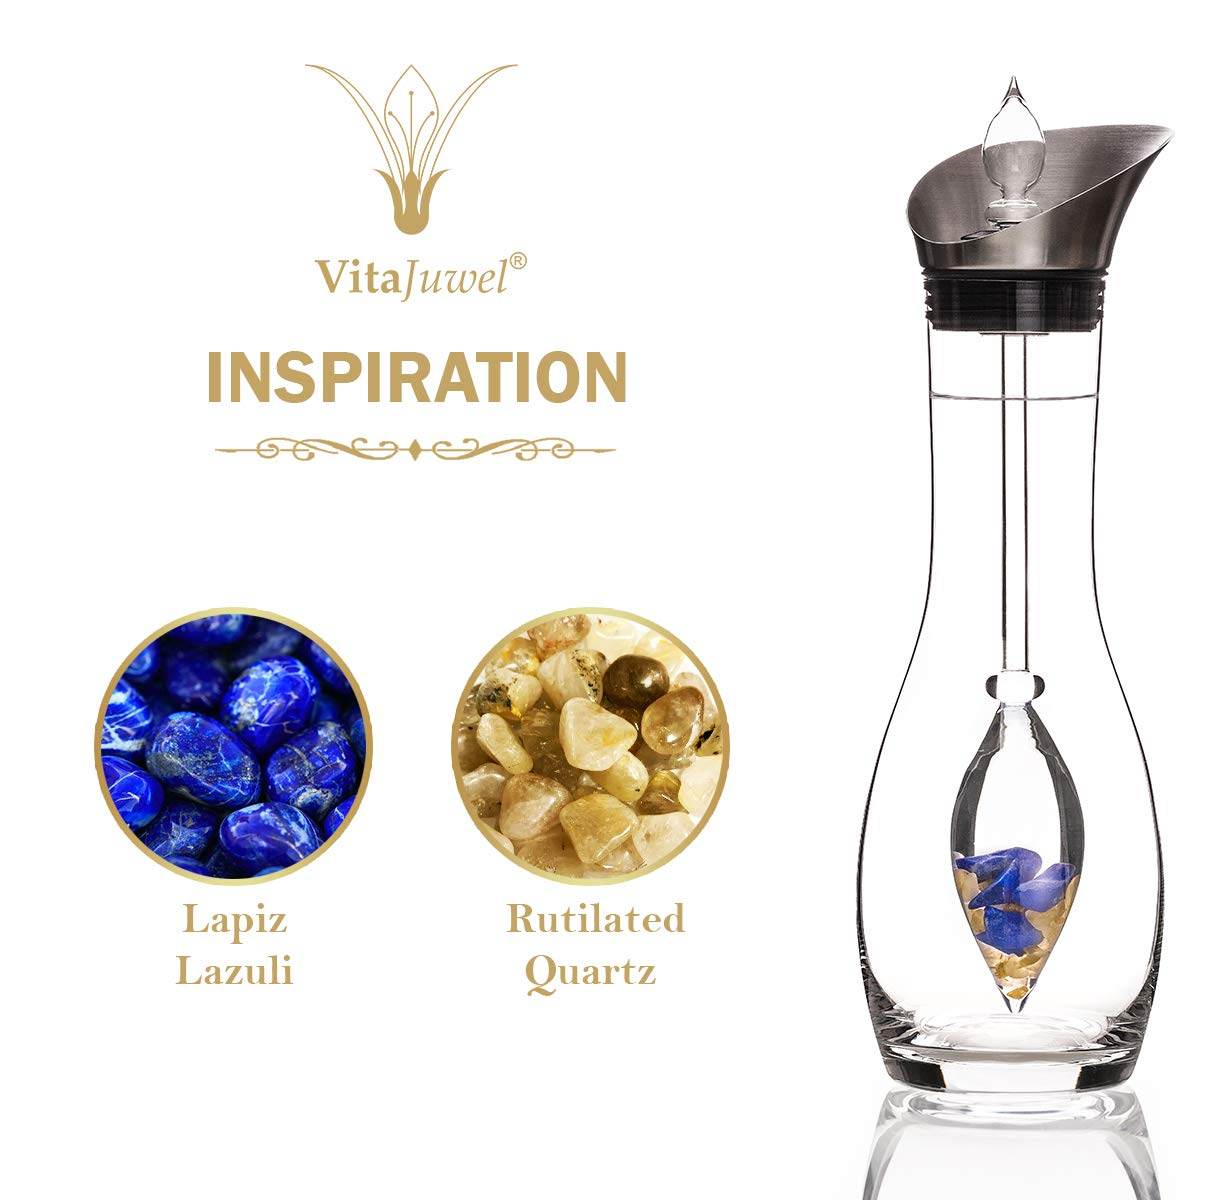 Vitajuwel Era Decanter with INSPIRATION Gemstone Vial. Gemwater Carafe Pitcher. Lapis - claritycove.com